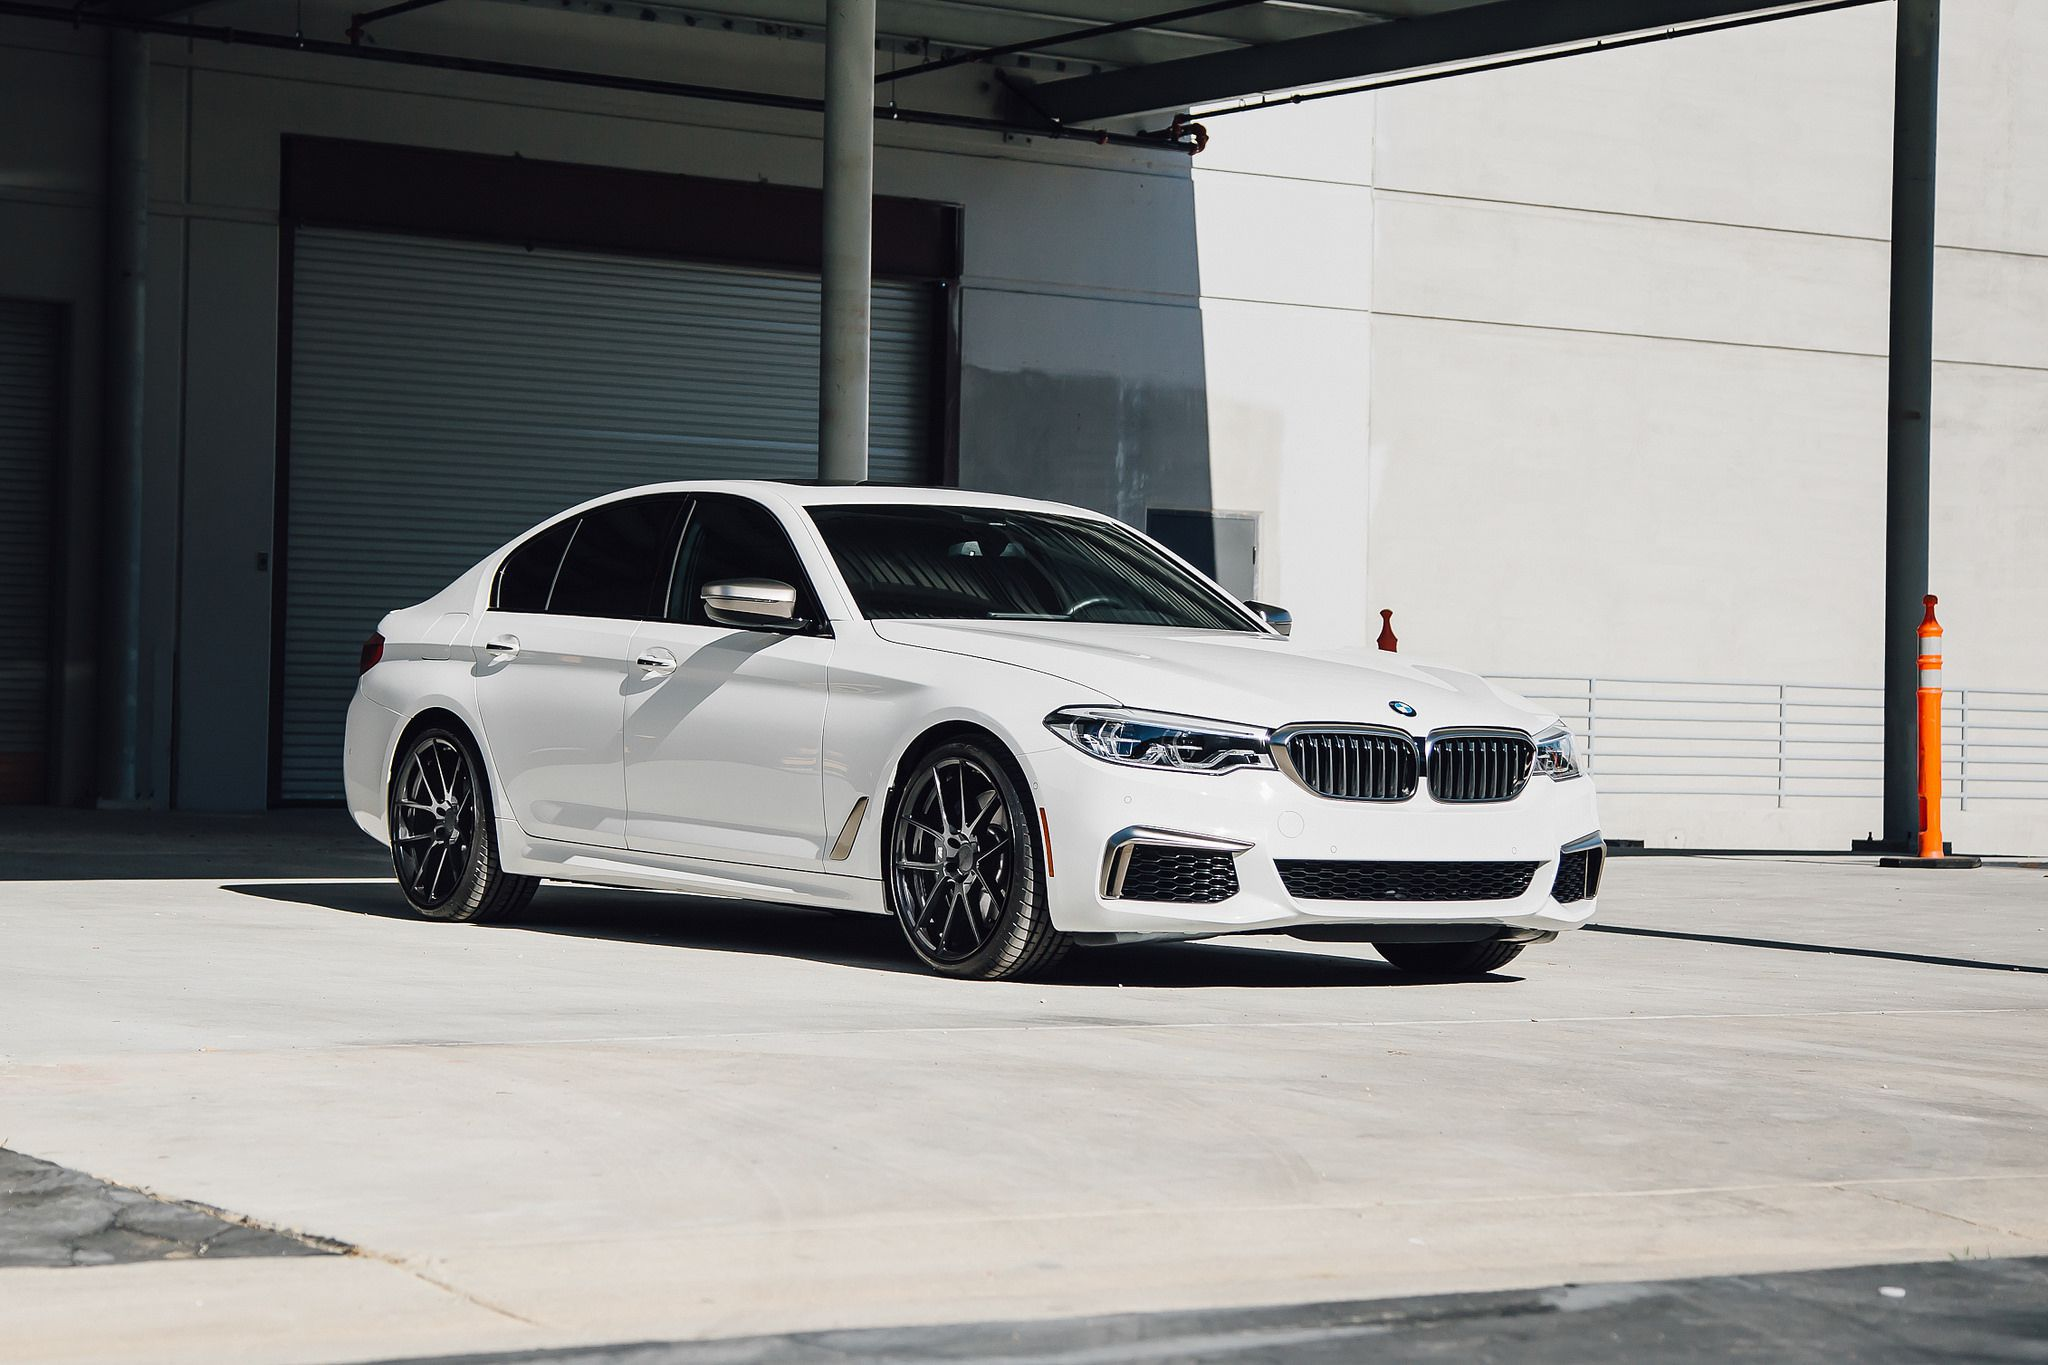 Front view of 2dr white BMW M550i G30 5 Series 2018